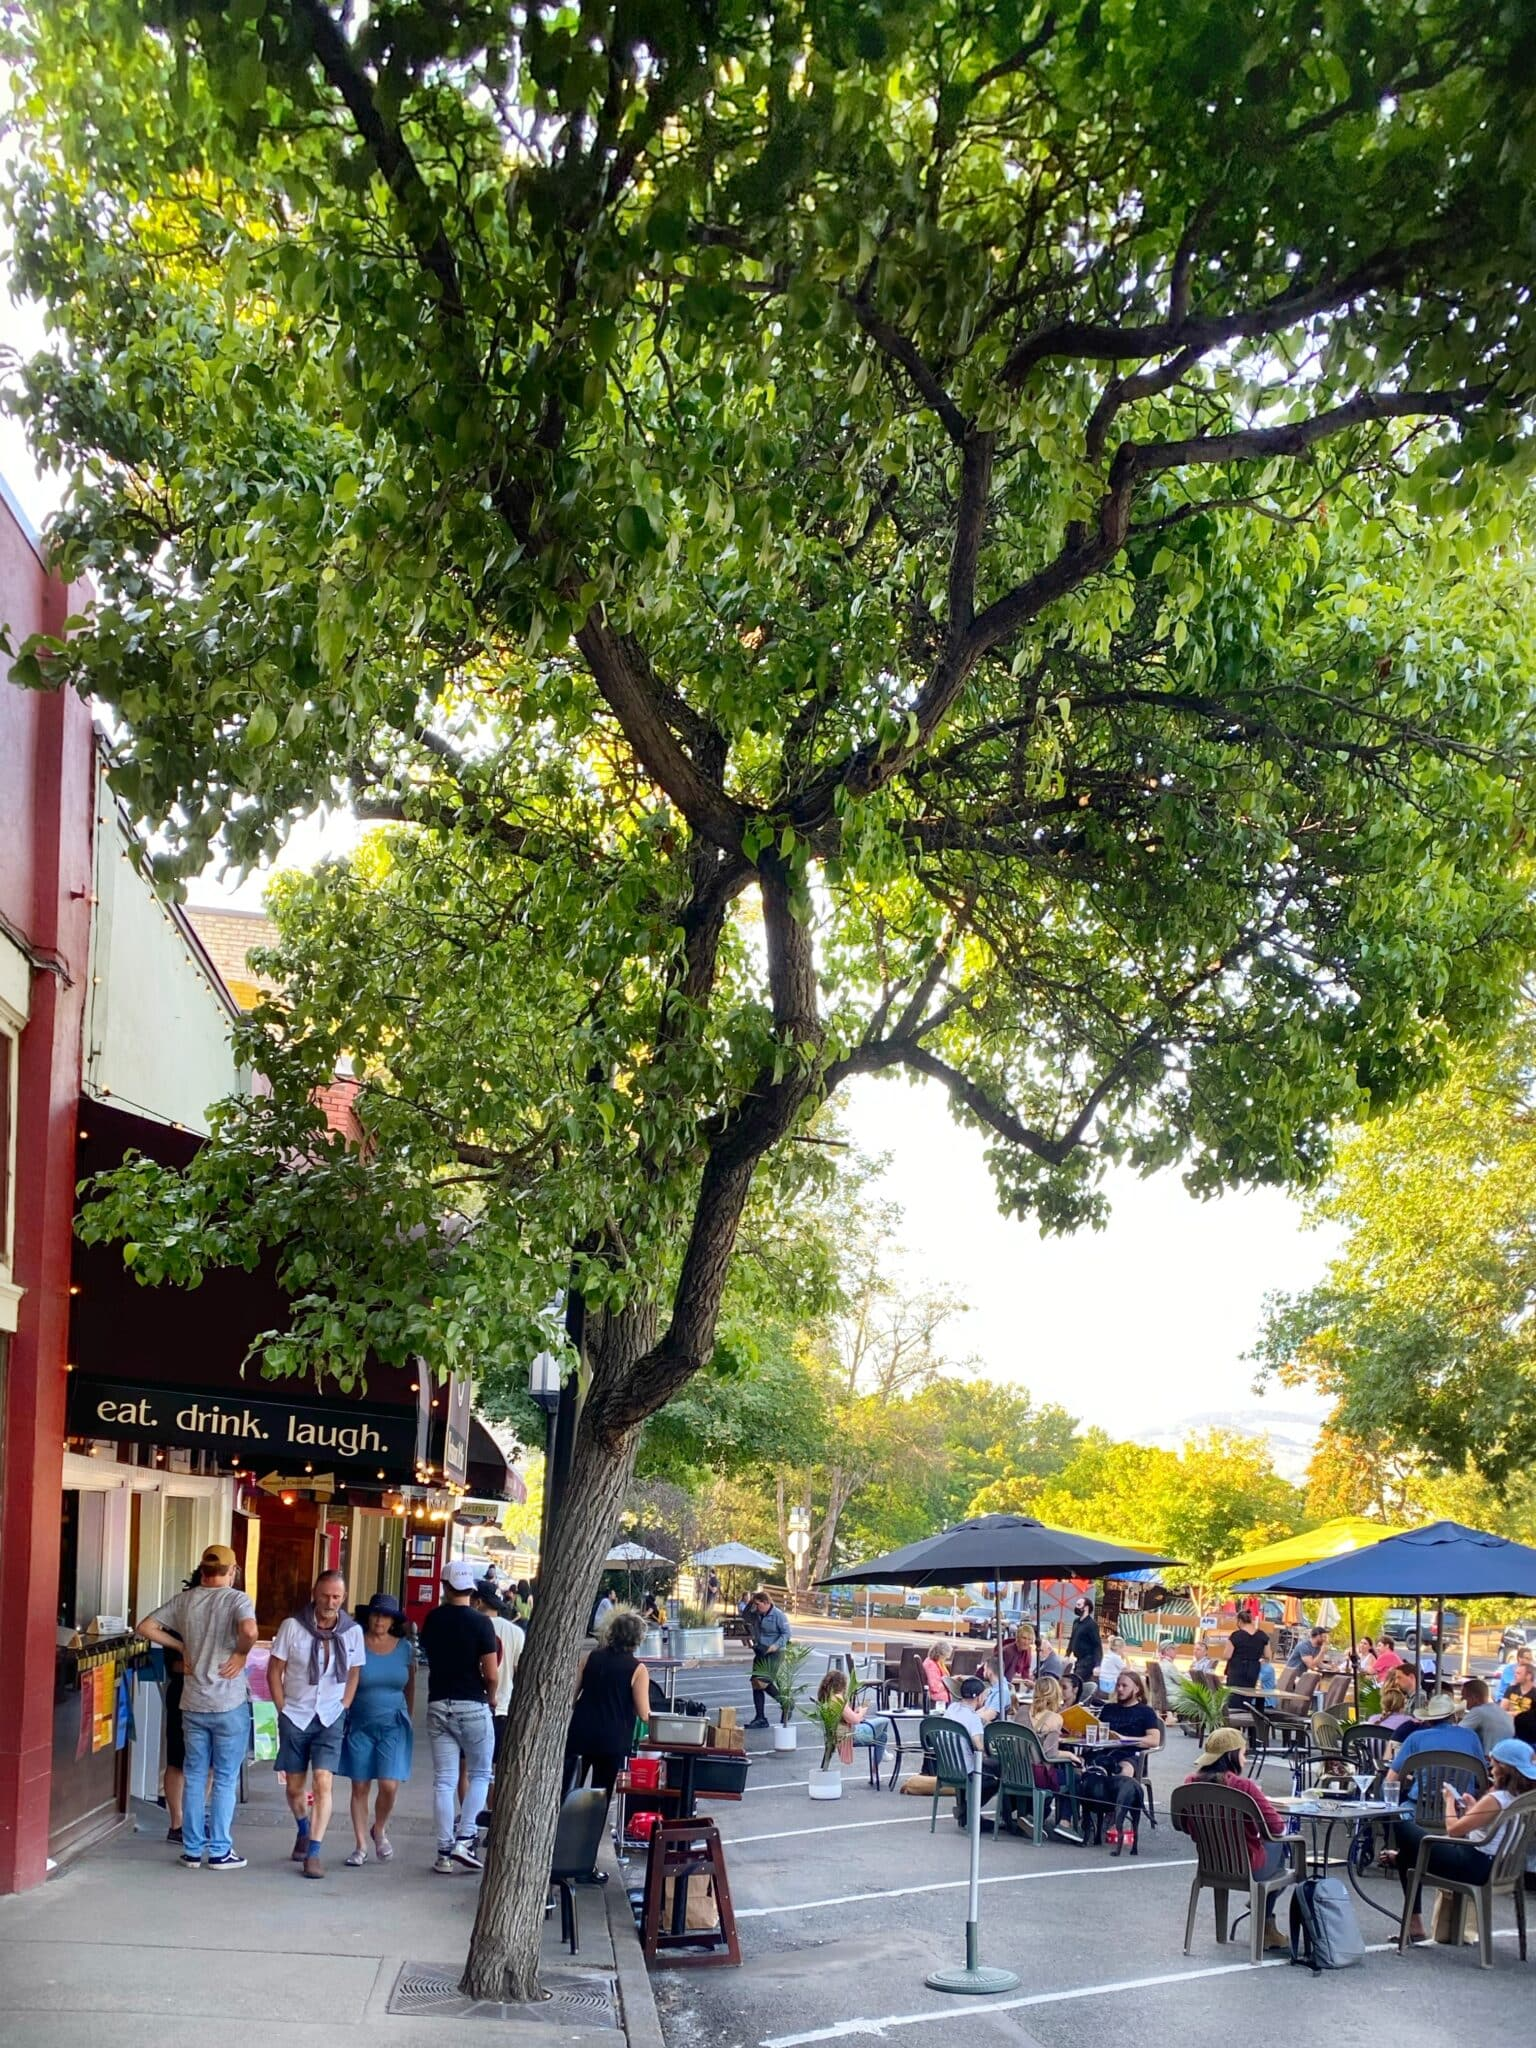 Outdoor dining on the Plaza in Ashland Oregon